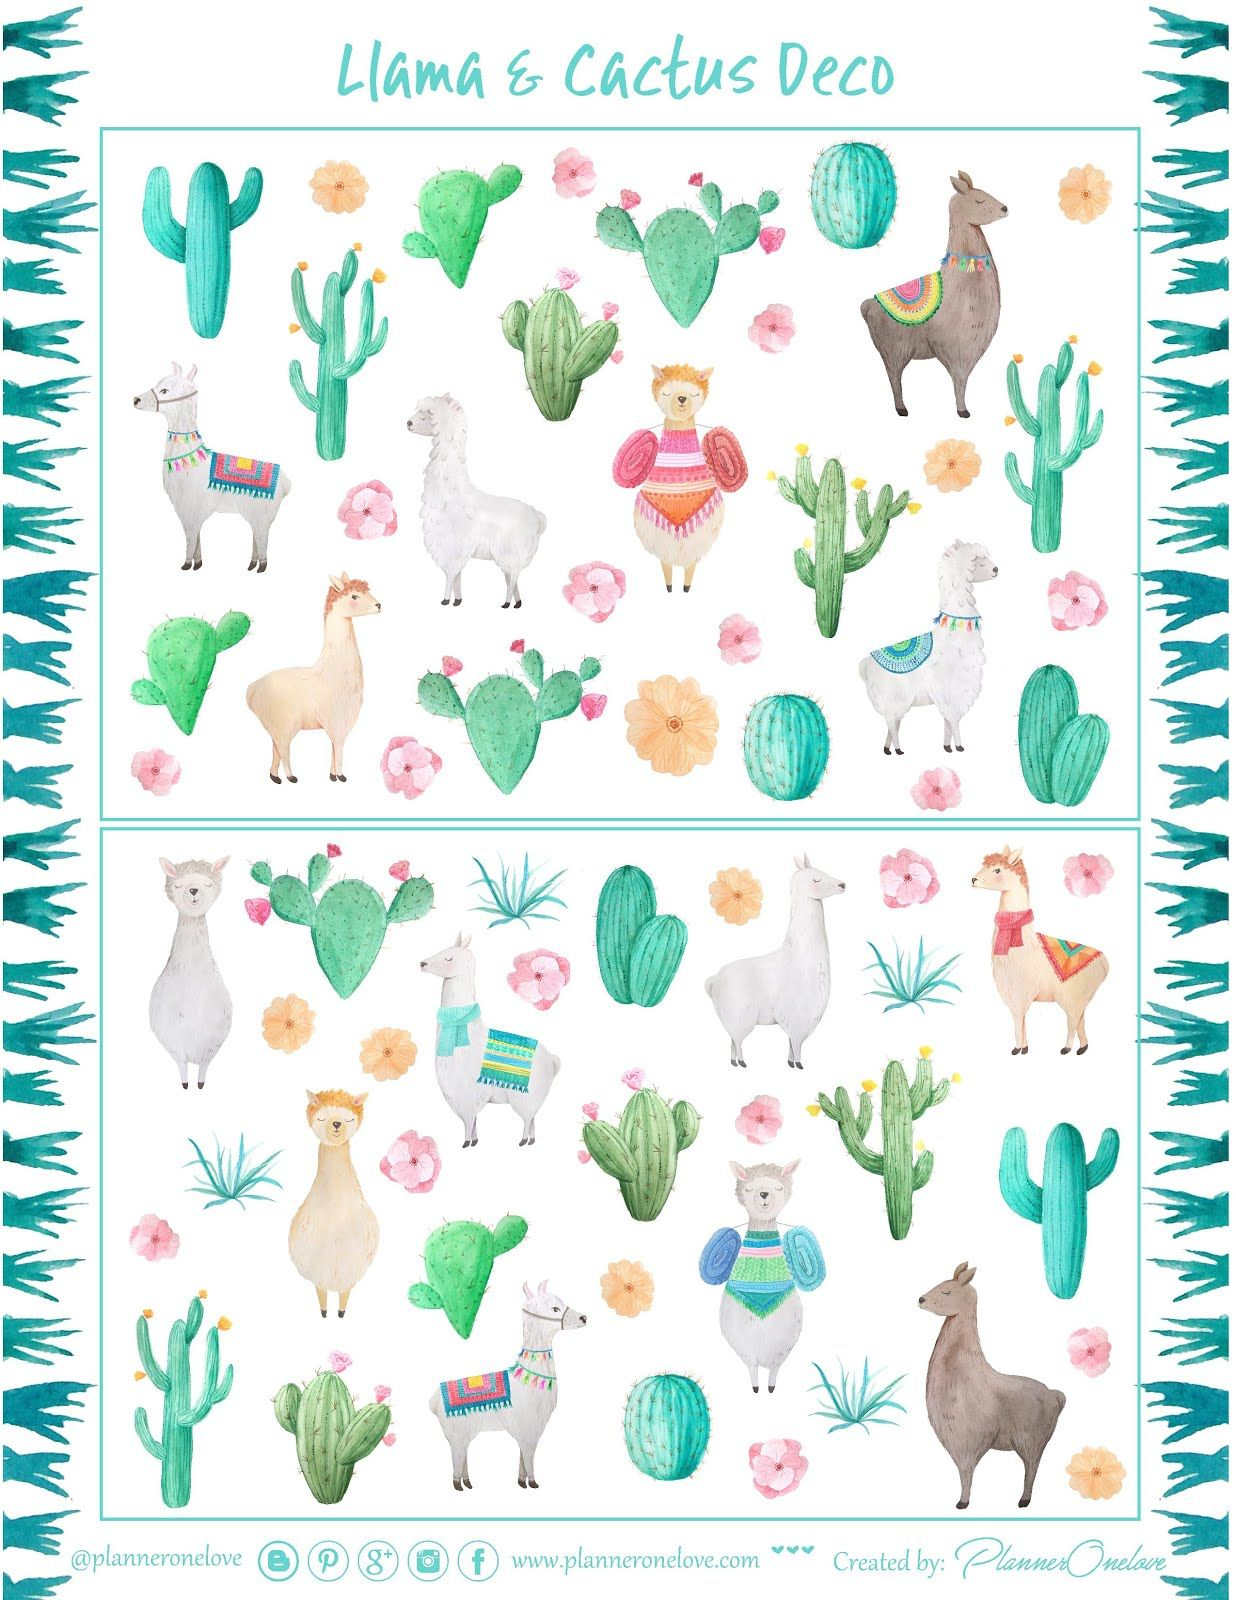 image relating to Llama Printable called Absolutely free Printable Llama Cactus Reward Deco Sheet versus Planner